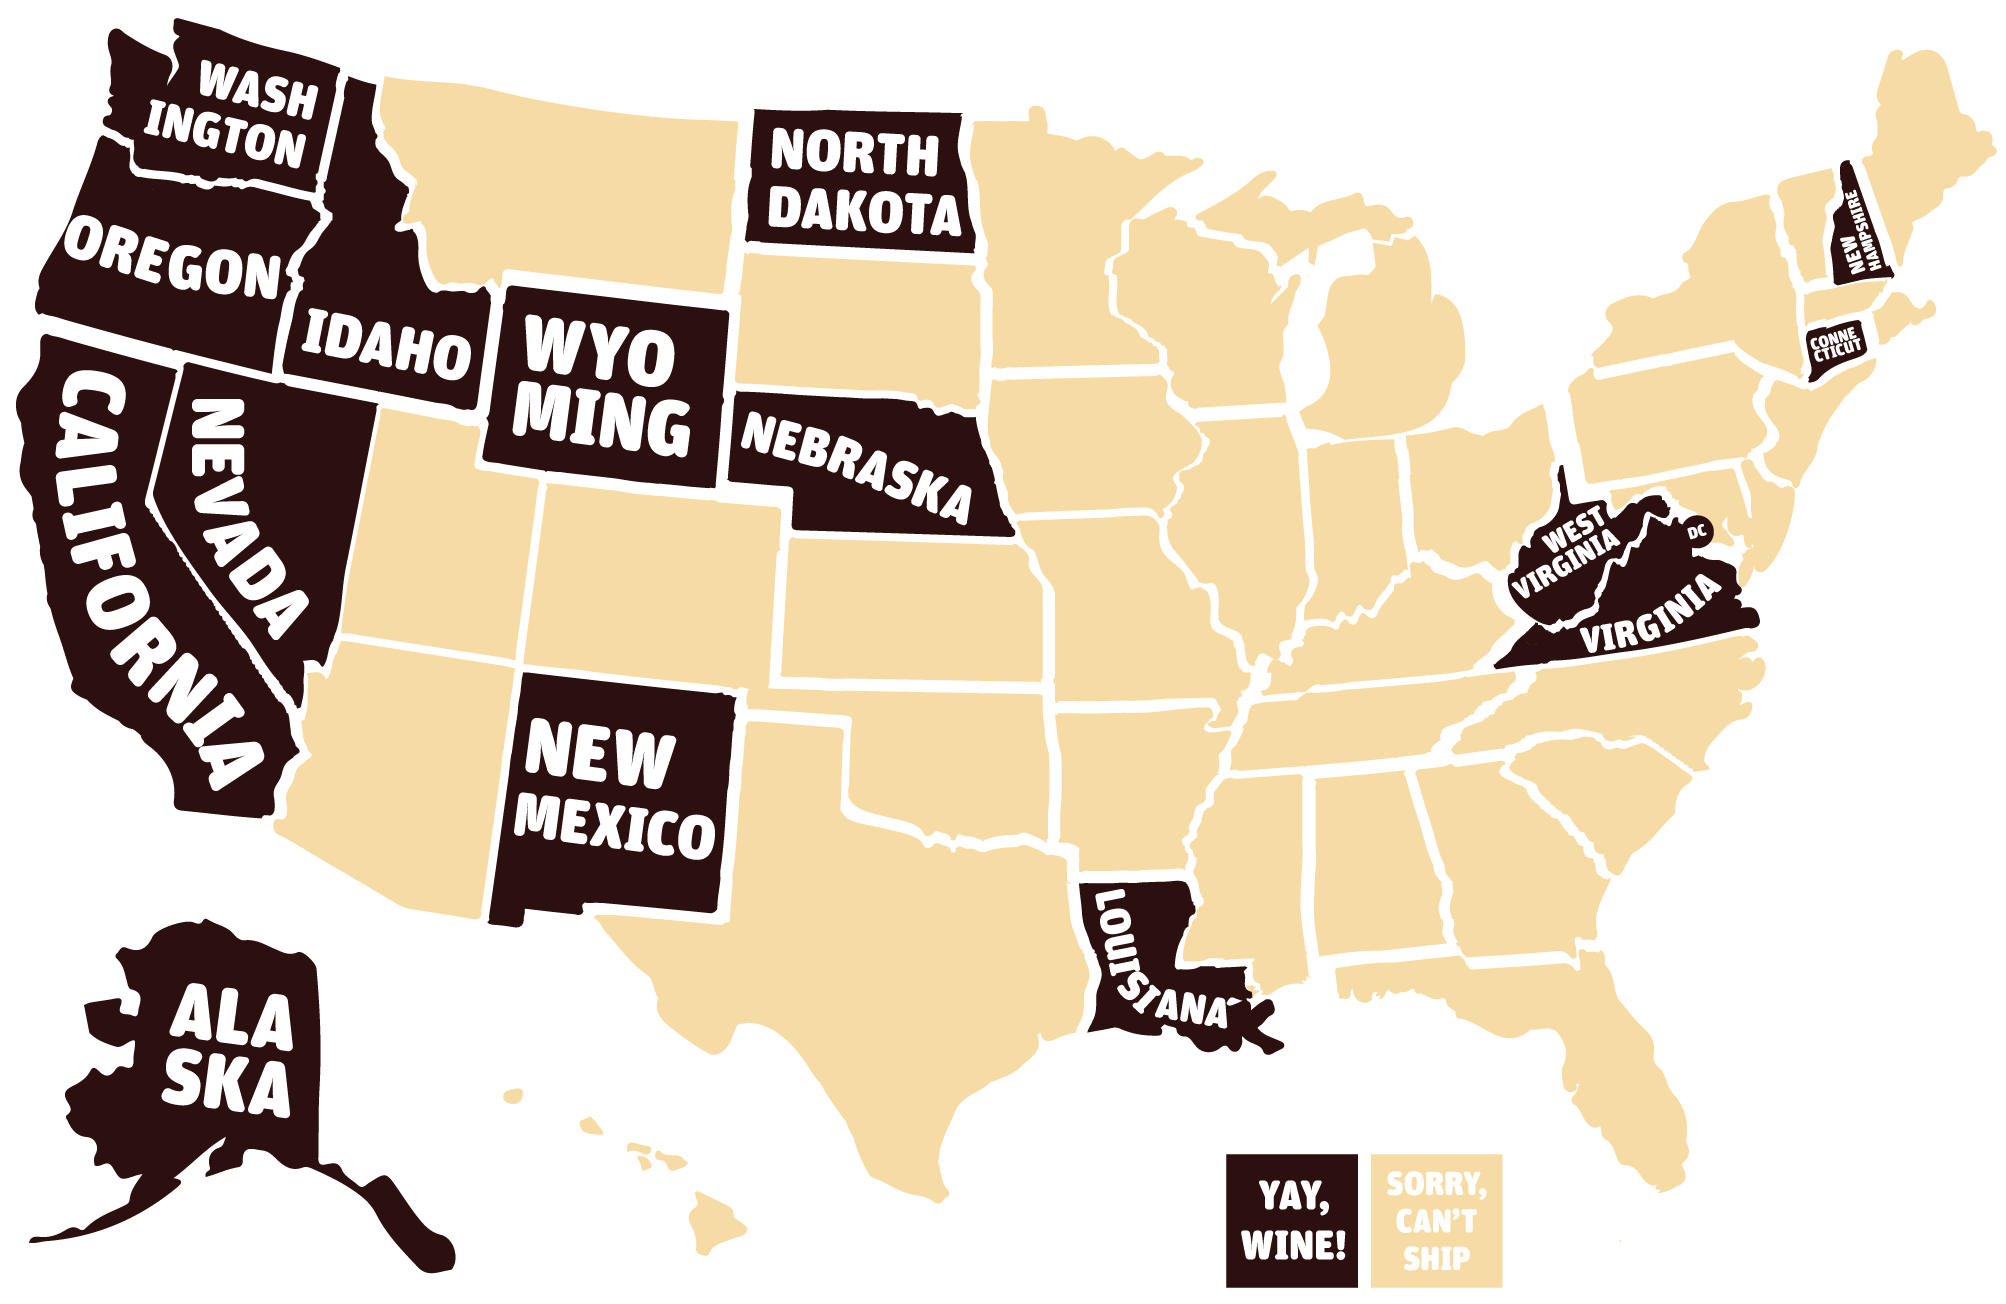 Map of States MyWinehunter Can Ship To